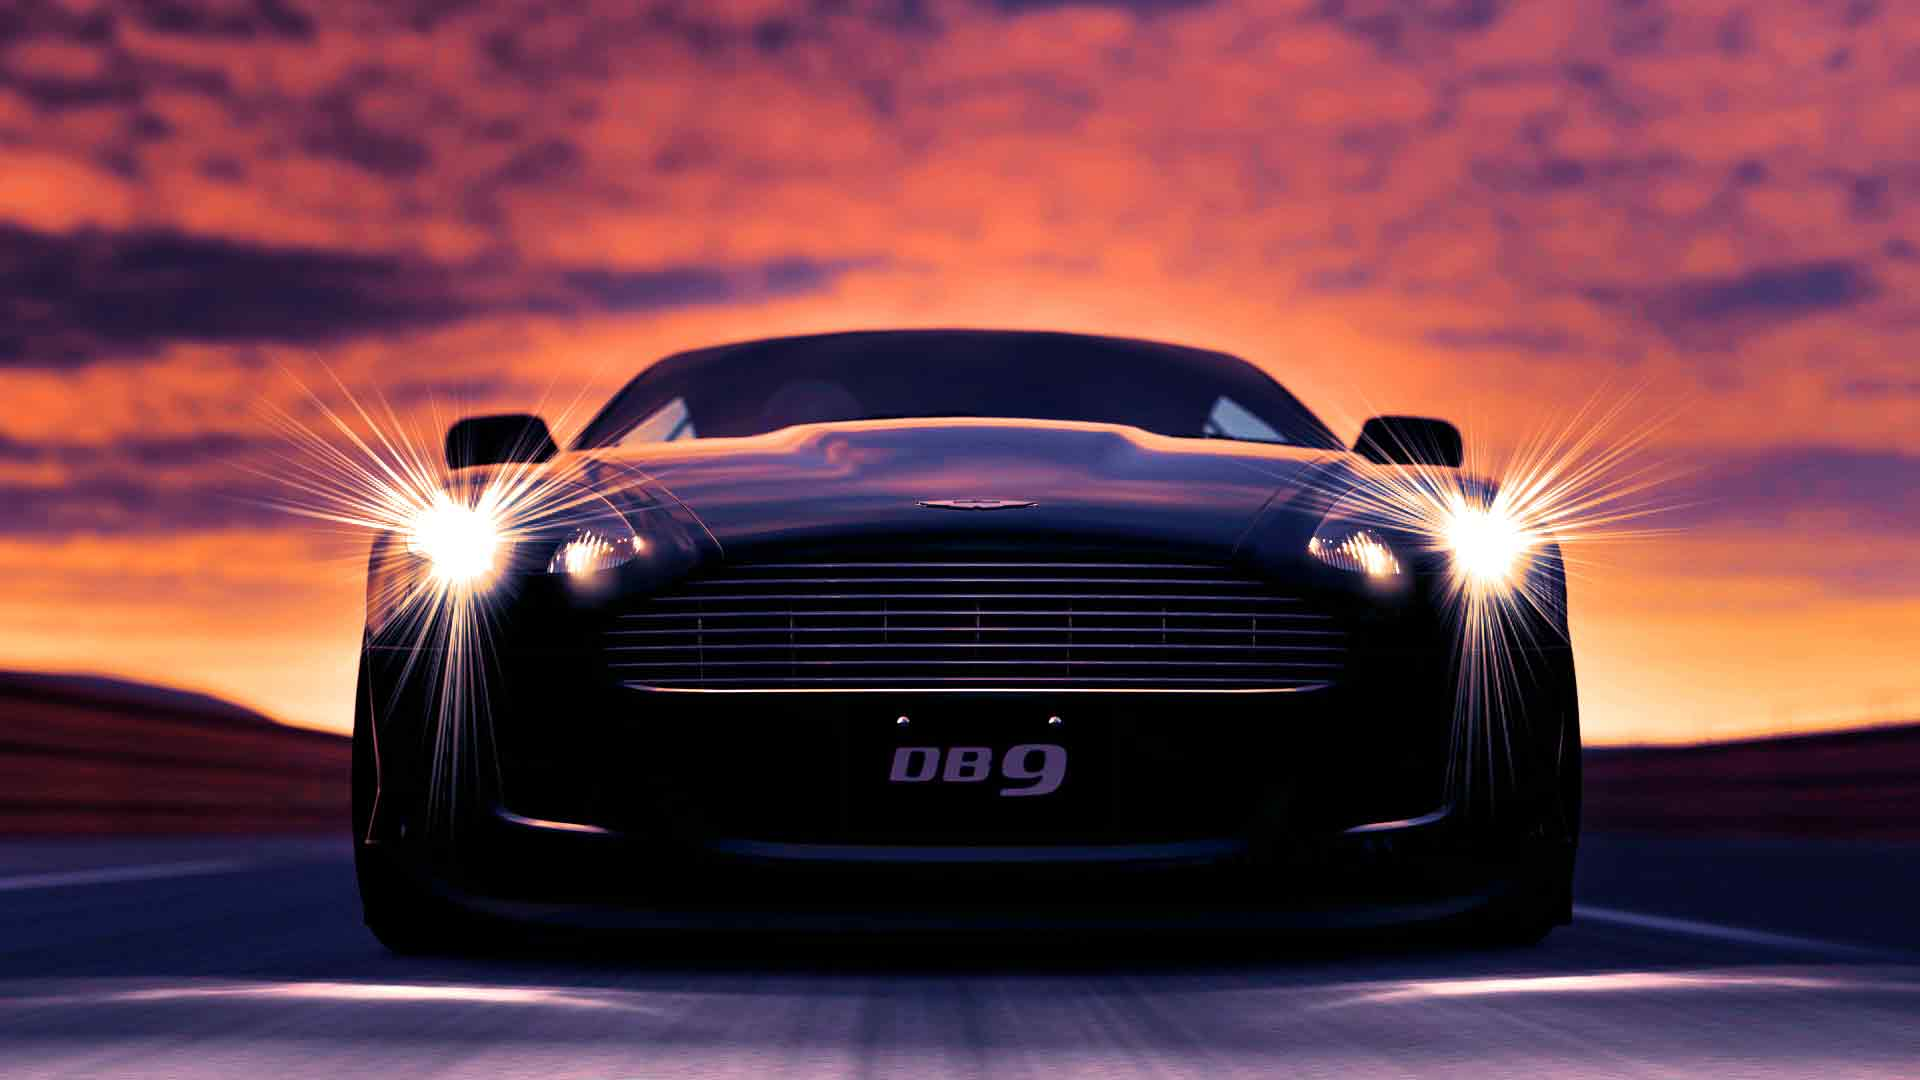 Aston Martin DB9 Wallpaper 18